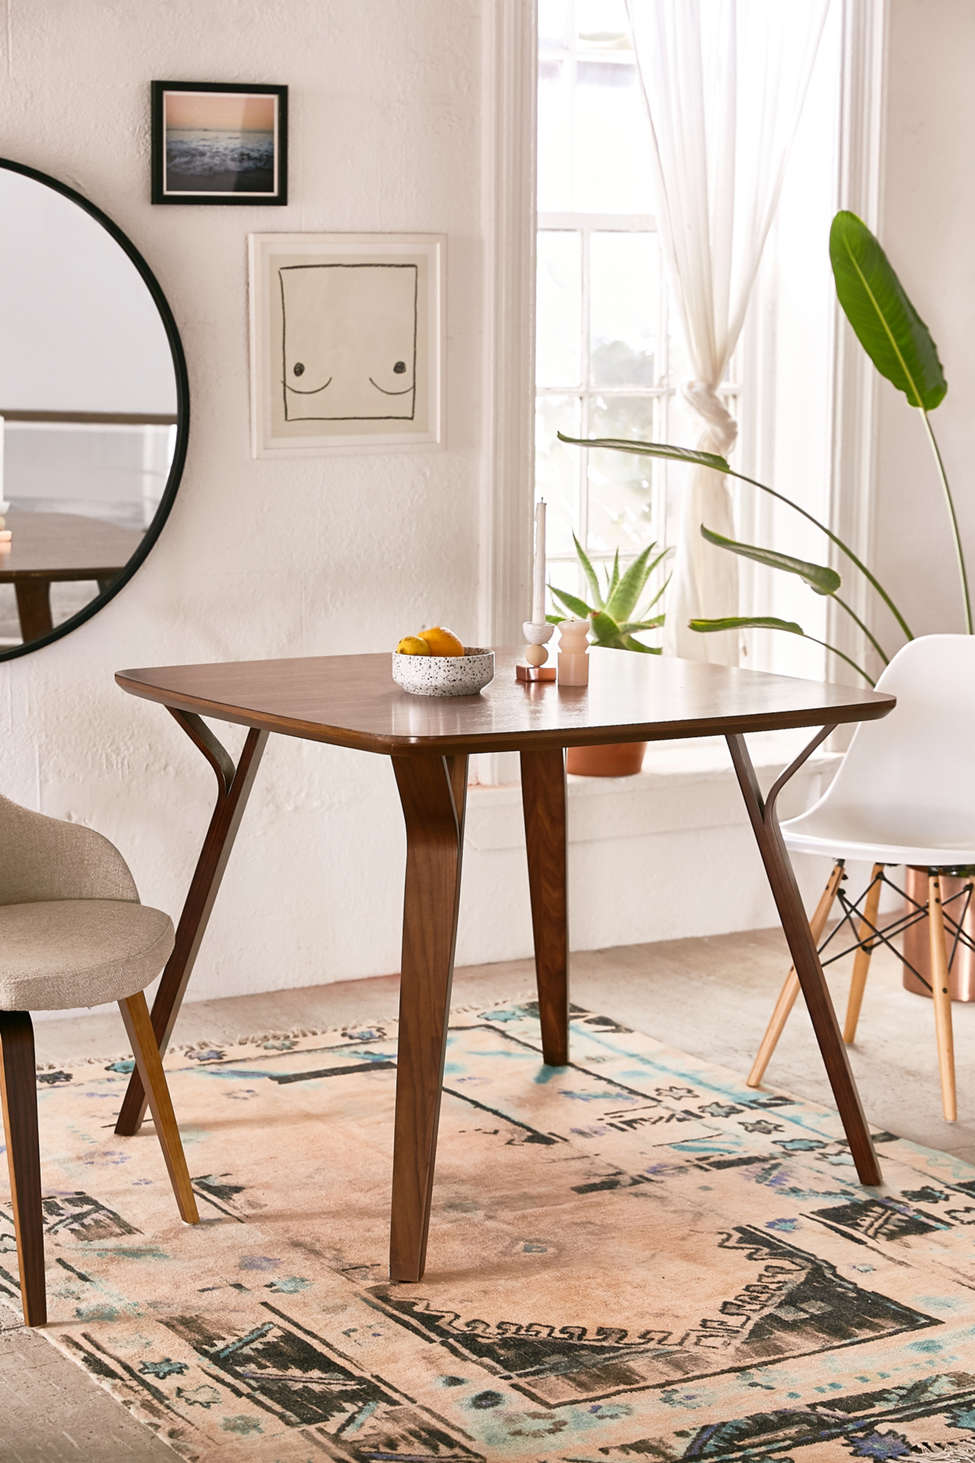 Slide View: 1: Foila Dining Table